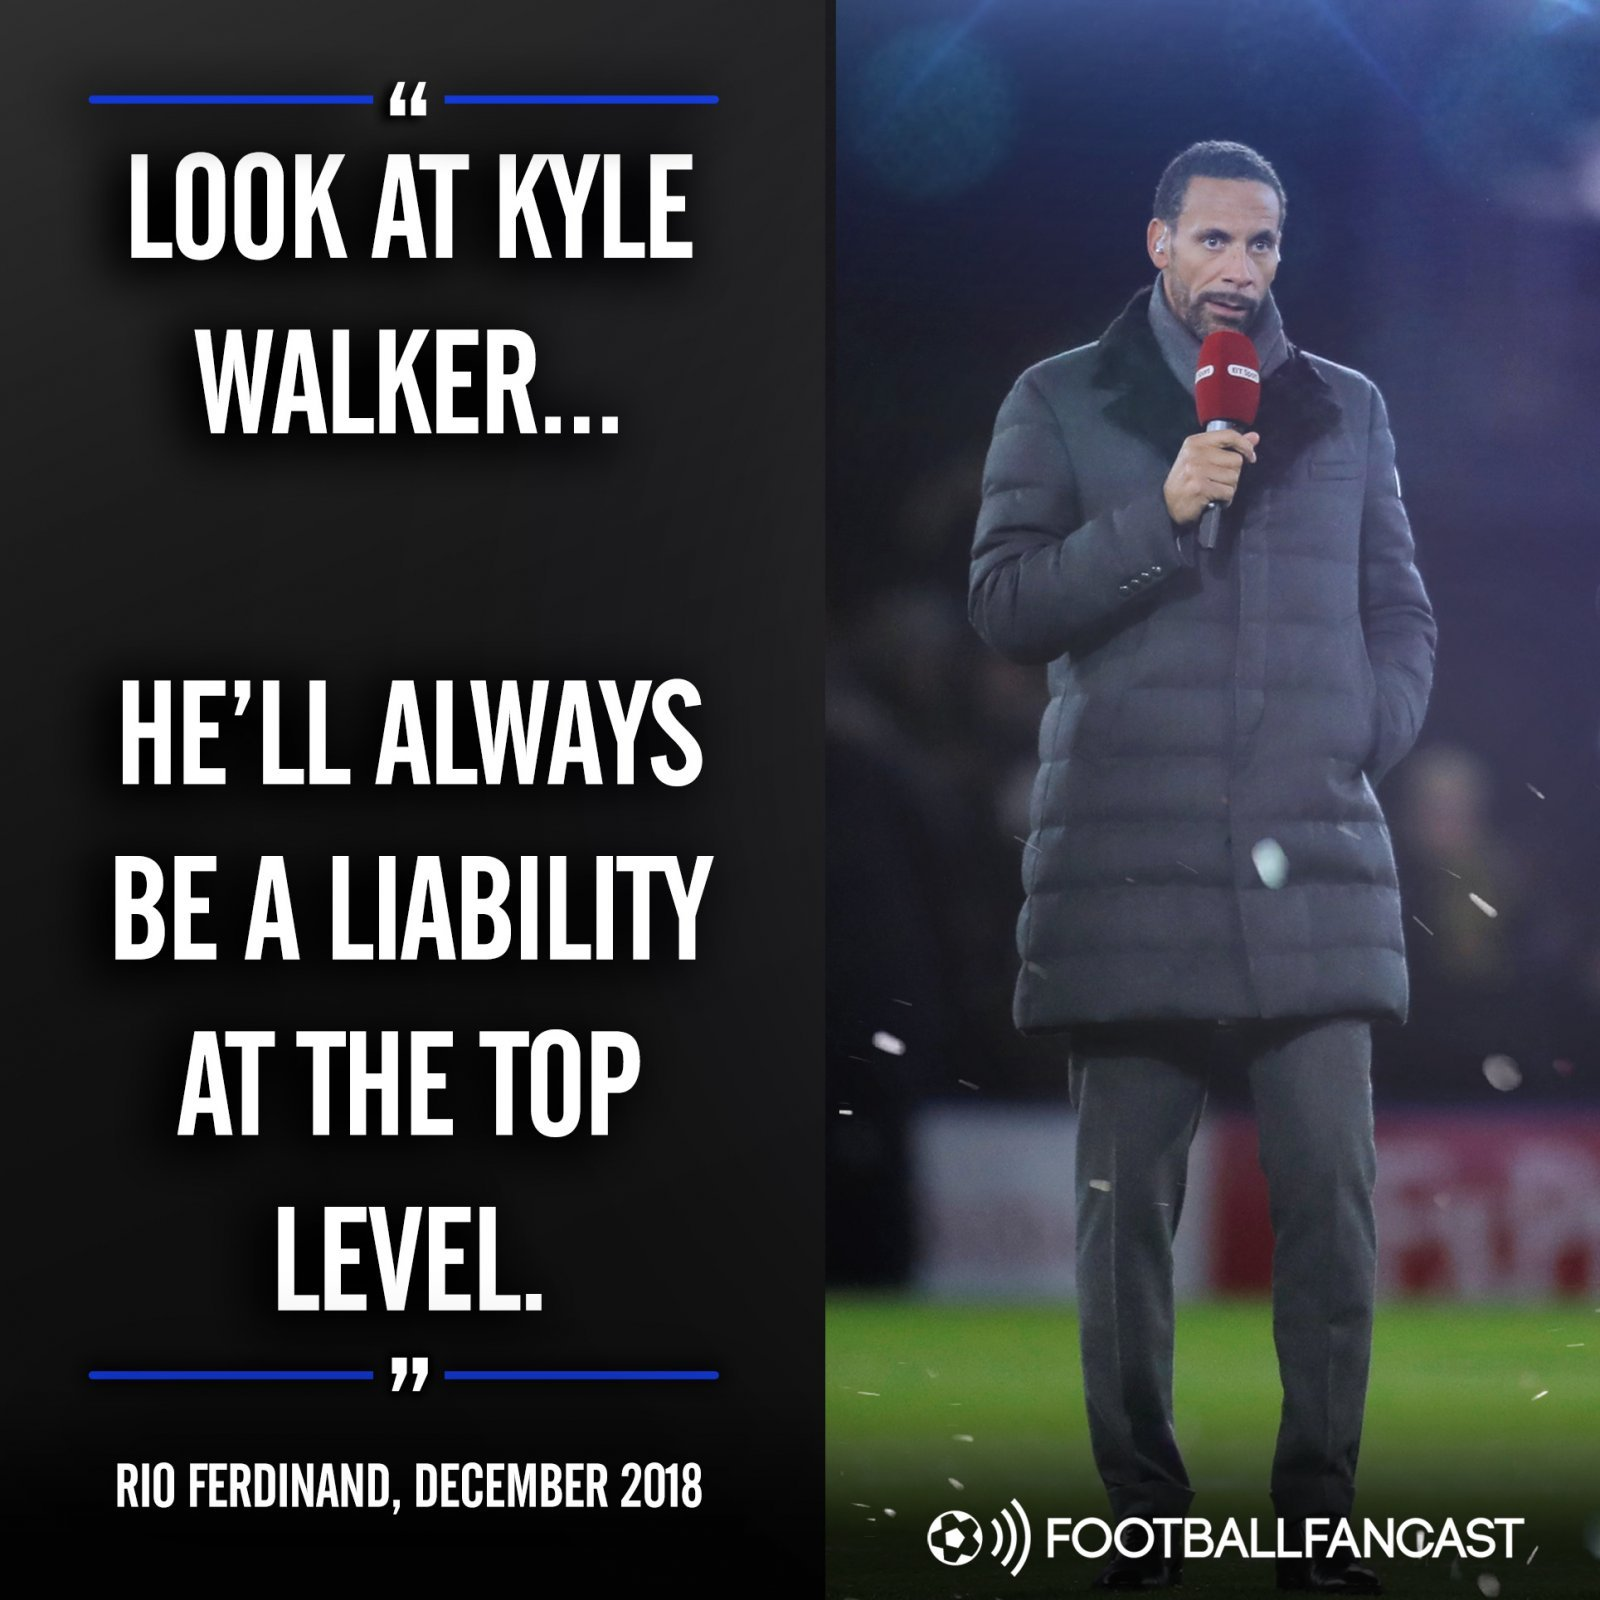 Rio Ferdinand's quote on Kyle Walker